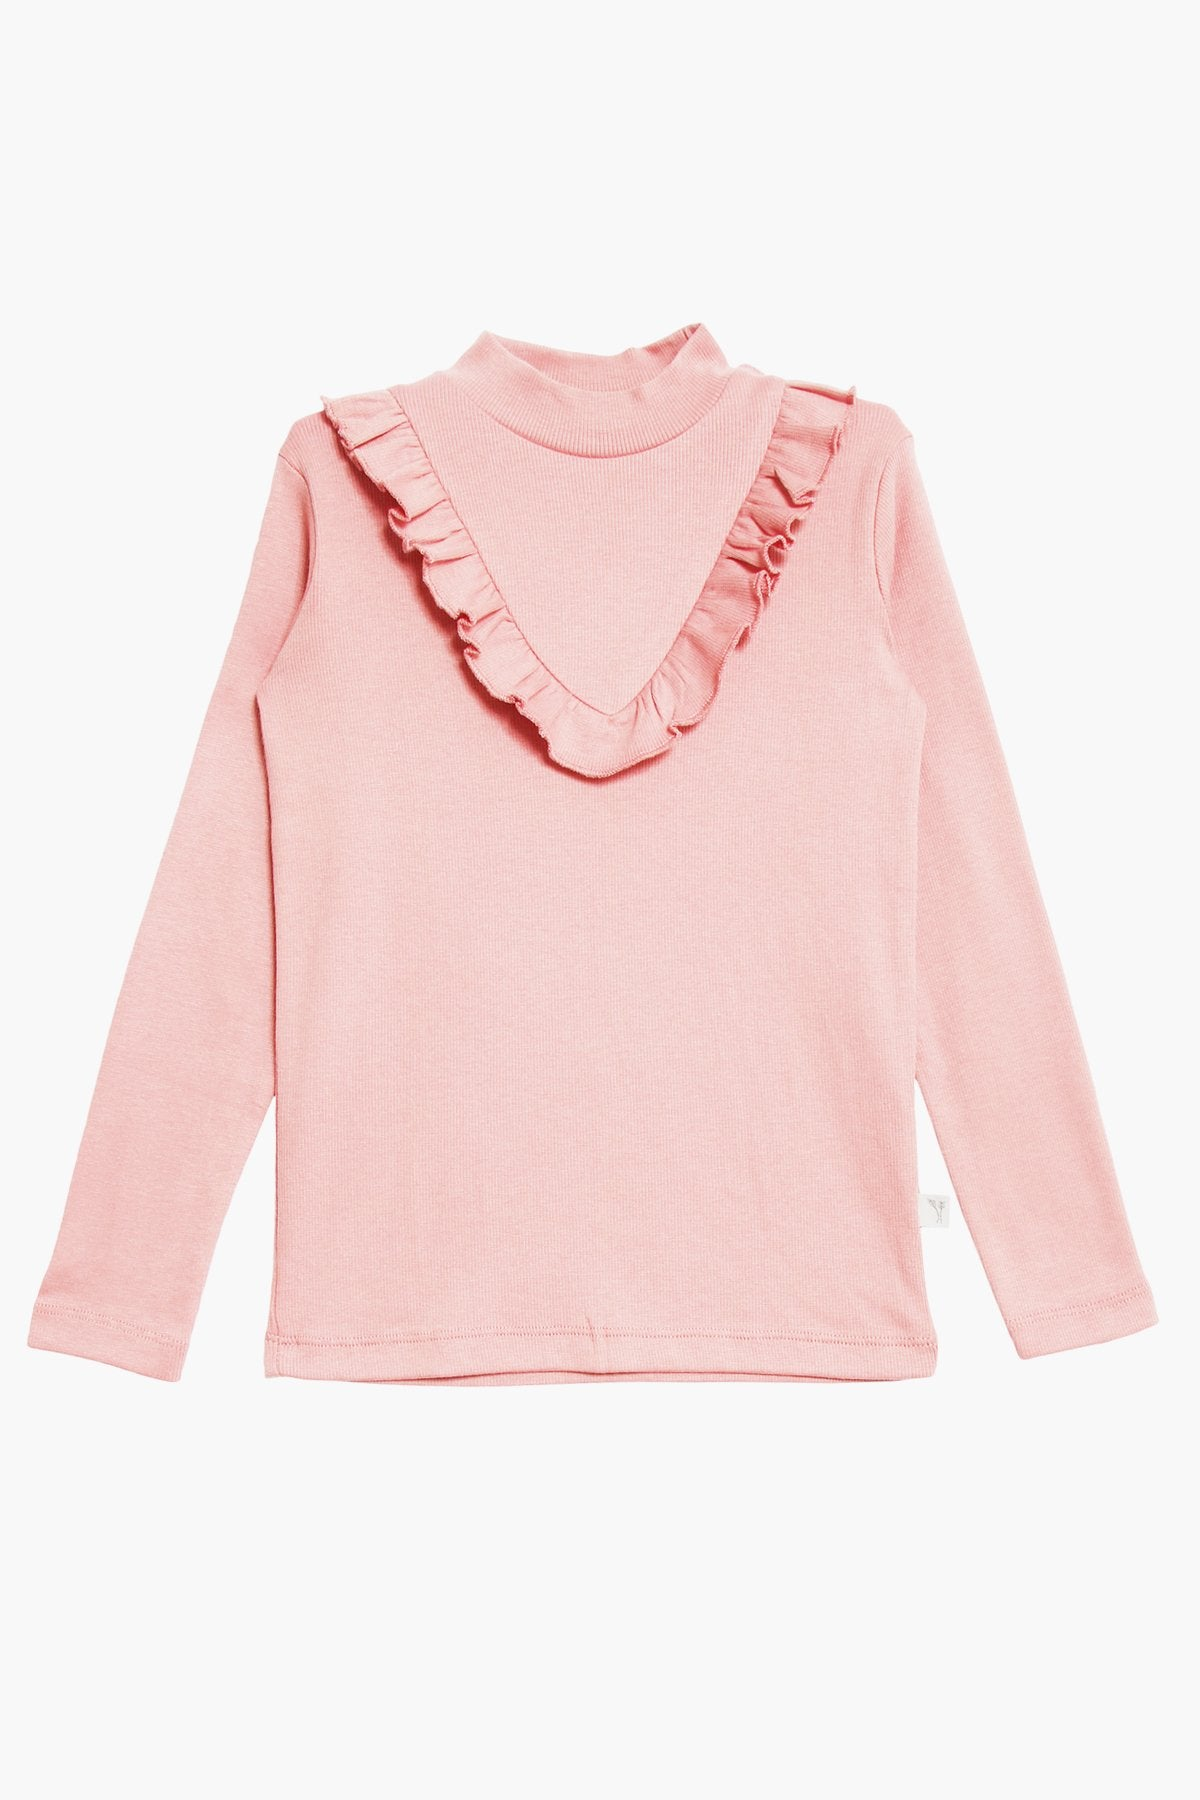 Wheat Ruffle Shirt - Misty Rose